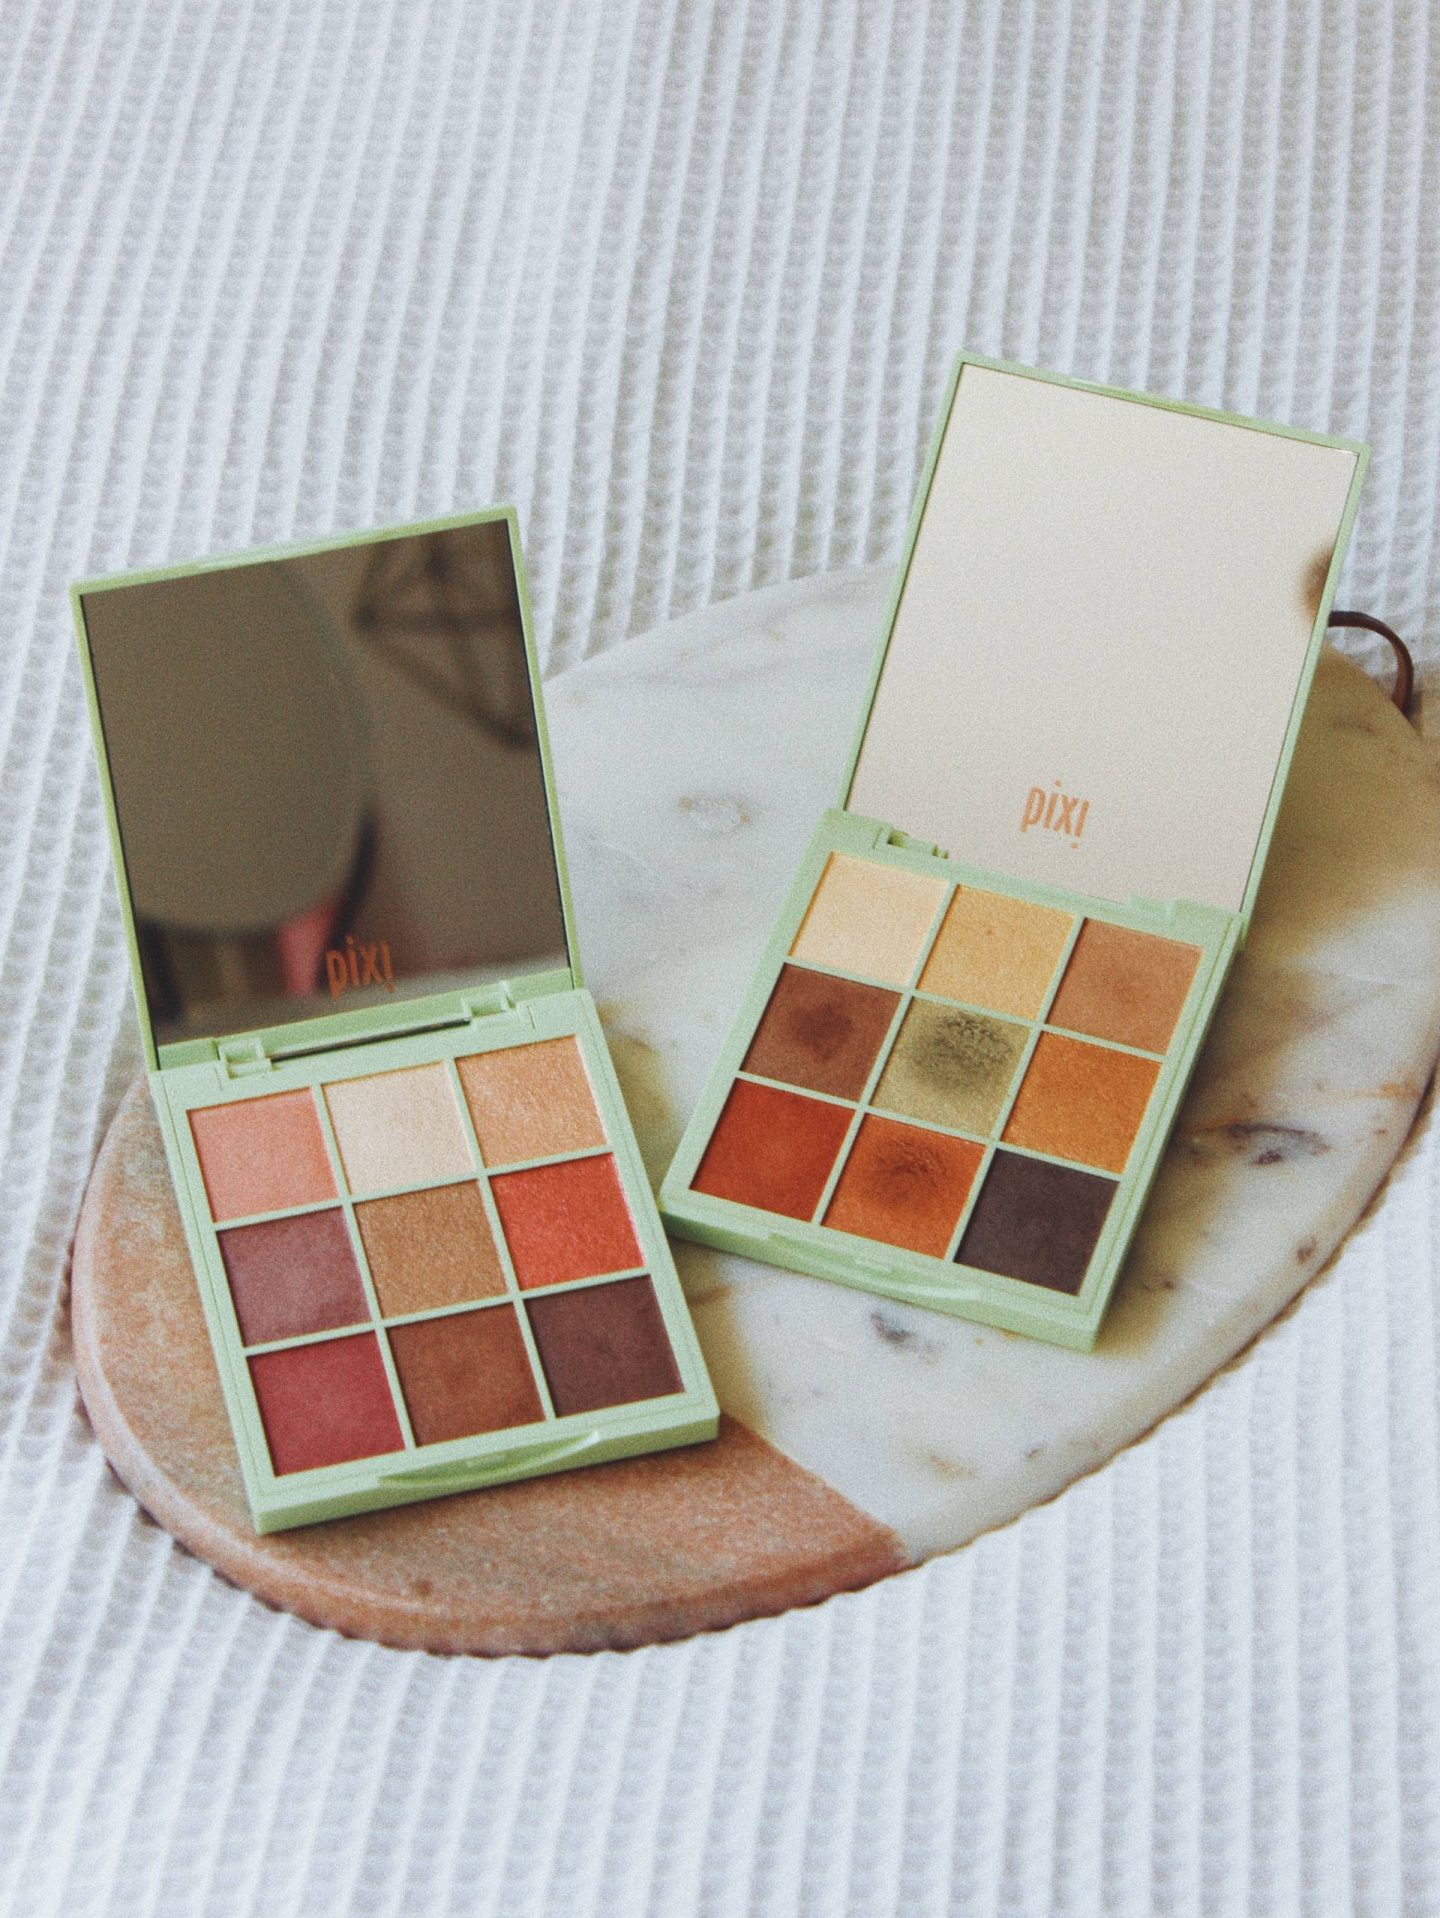 PIXI Eye Effects review